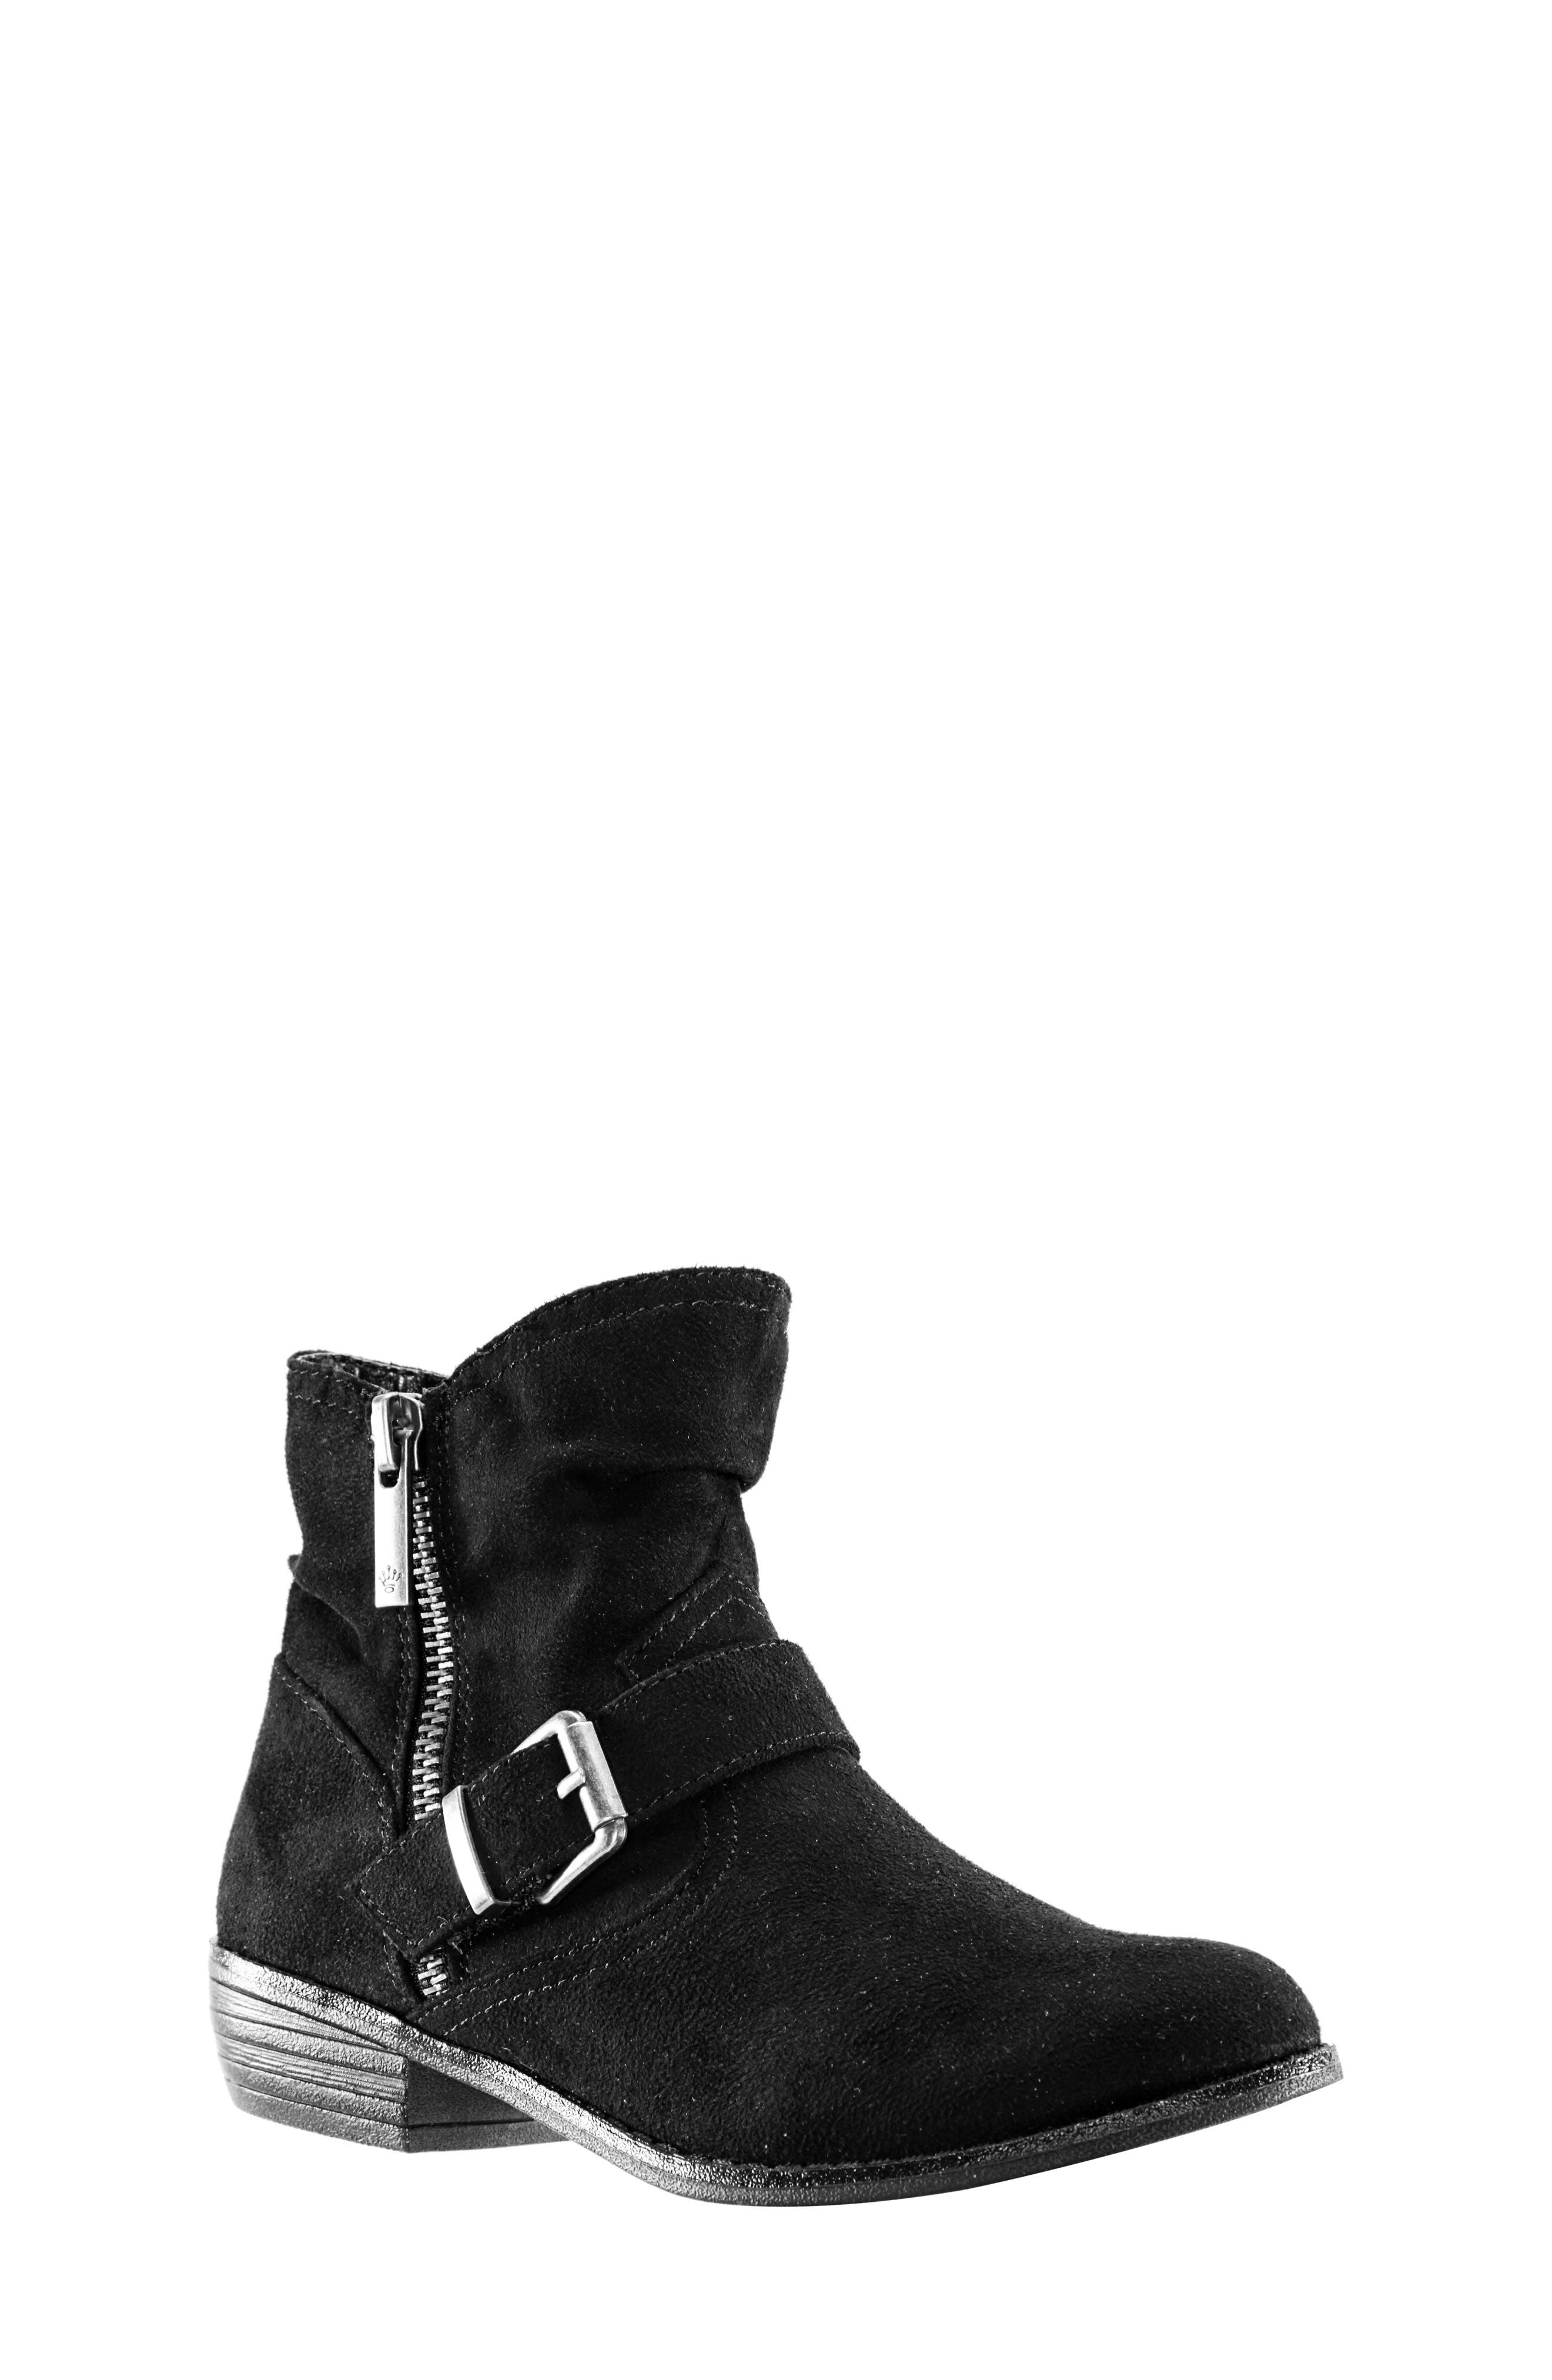 Dorrie Moto Bootie,                         Main,                         color, BLACK BURNISHED